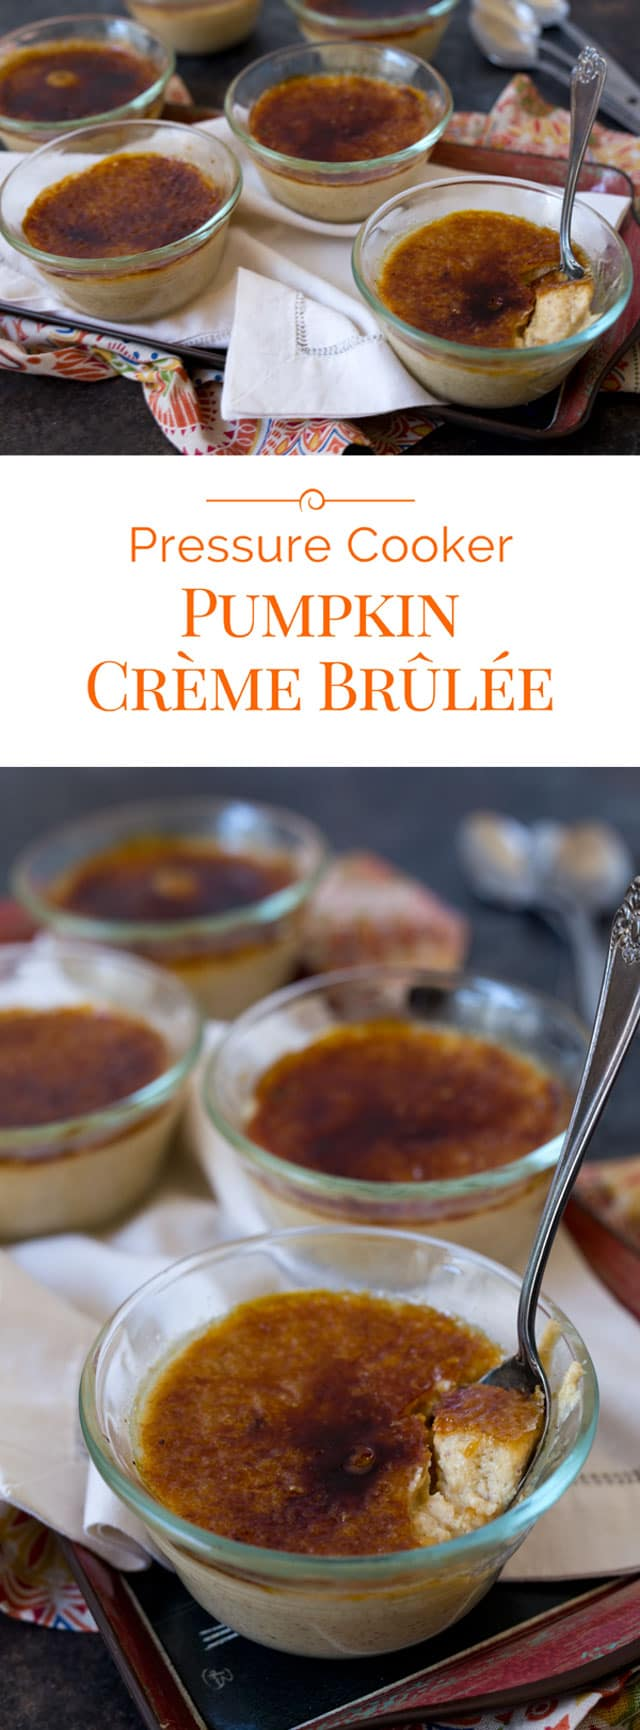 This Pressure Cooker Pumpkin Crème Brûlée is a rich, creamy custard with warm falls spices, topped with a thin layer of crispy, caramelized sugar.